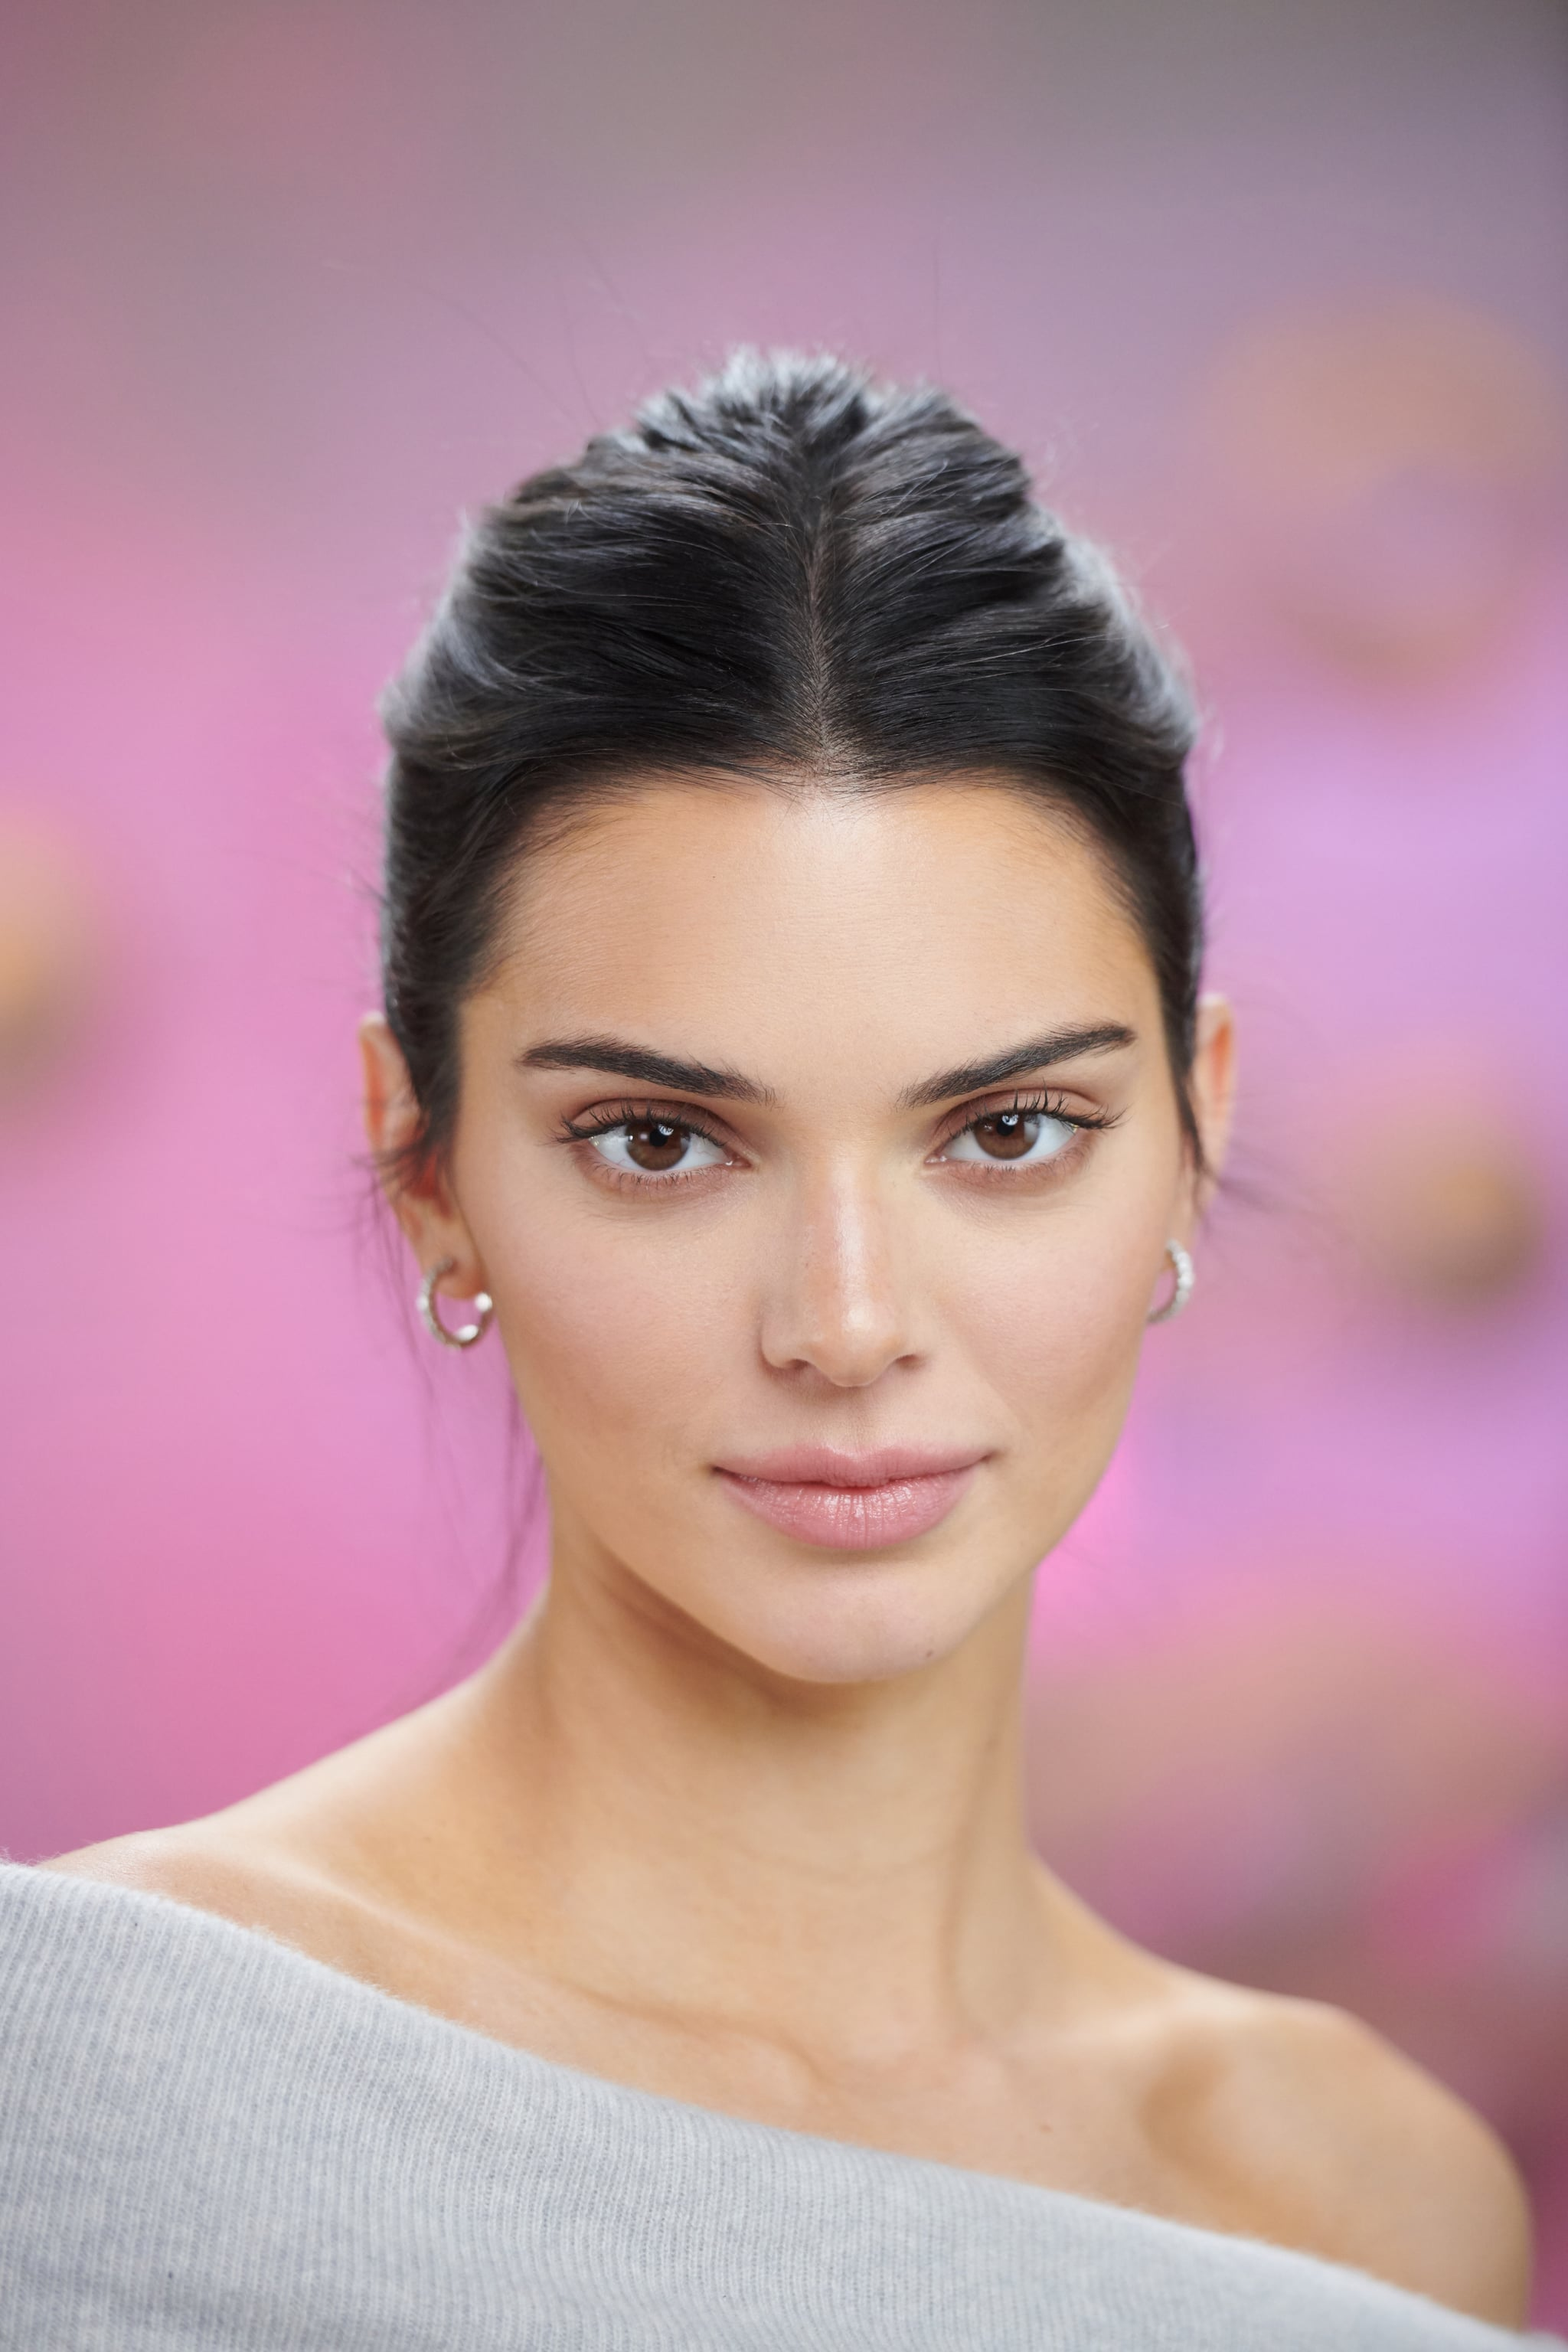 Kendall Jenner Just Enraged a Whole Bunch of Models ...  |Kendall Jenner